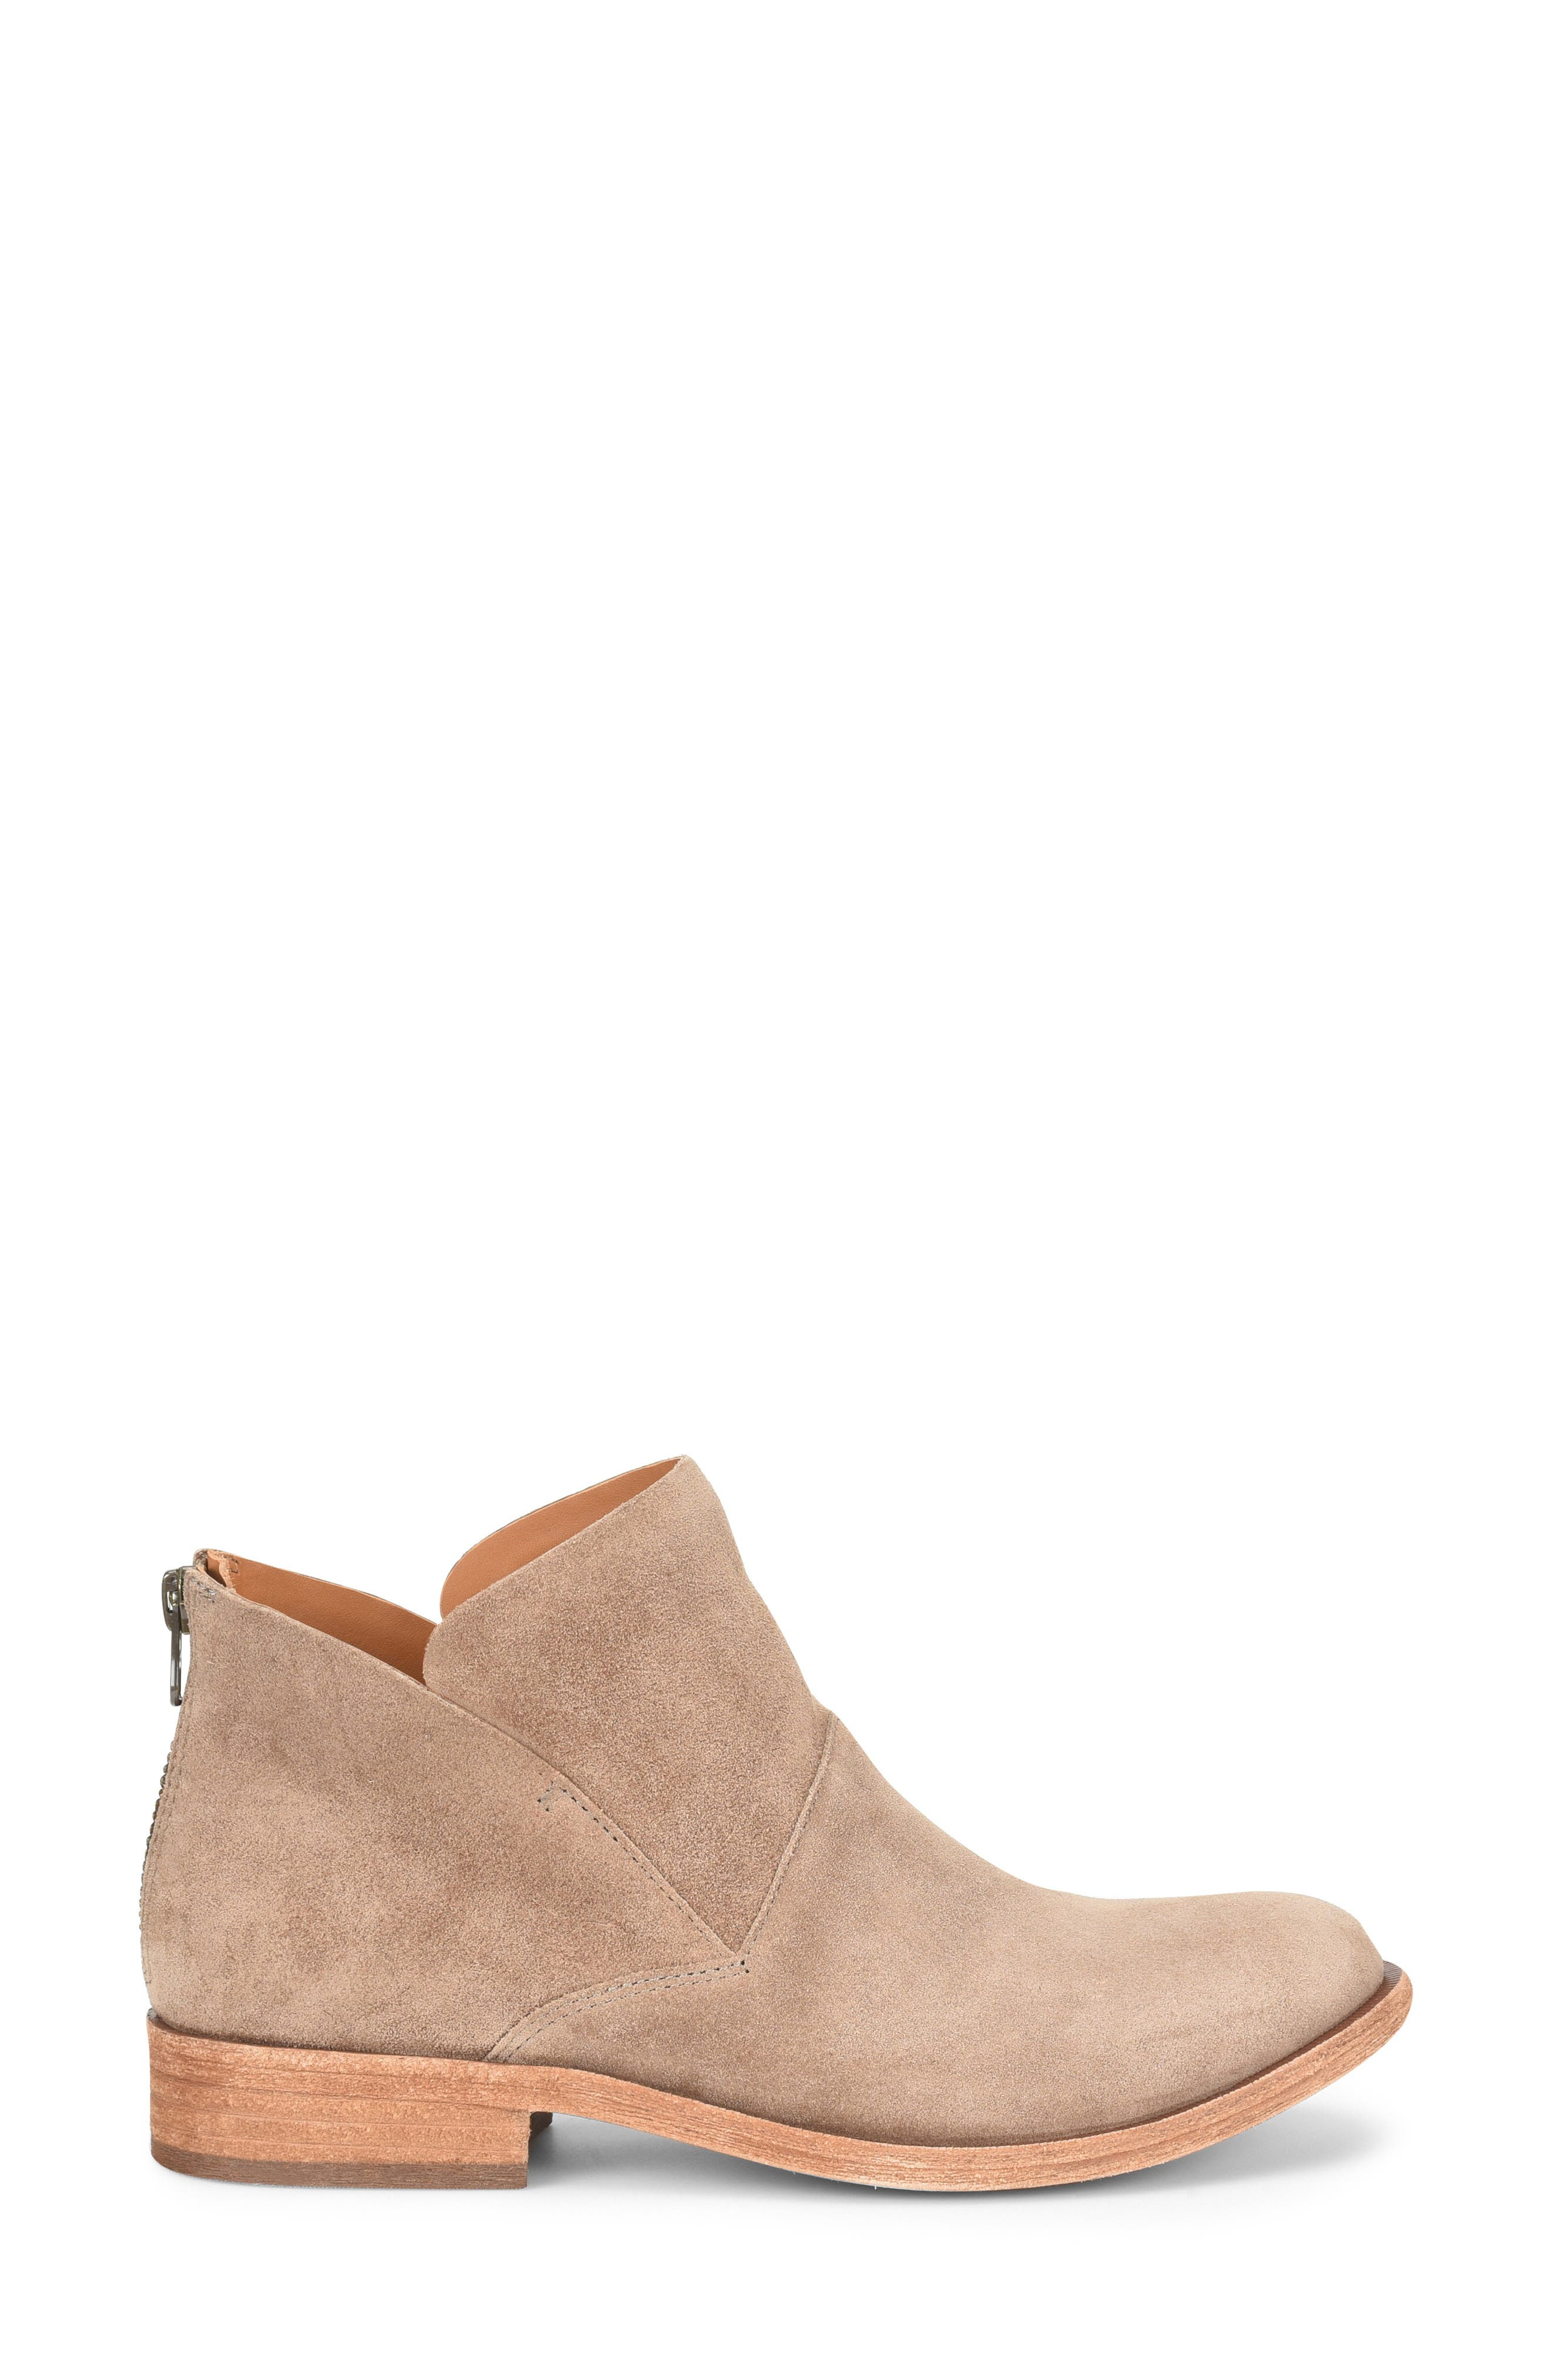 Ryder Ankle Boot,                             Alternate thumbnail 3, color,                             TAUPE GREY SUEDE